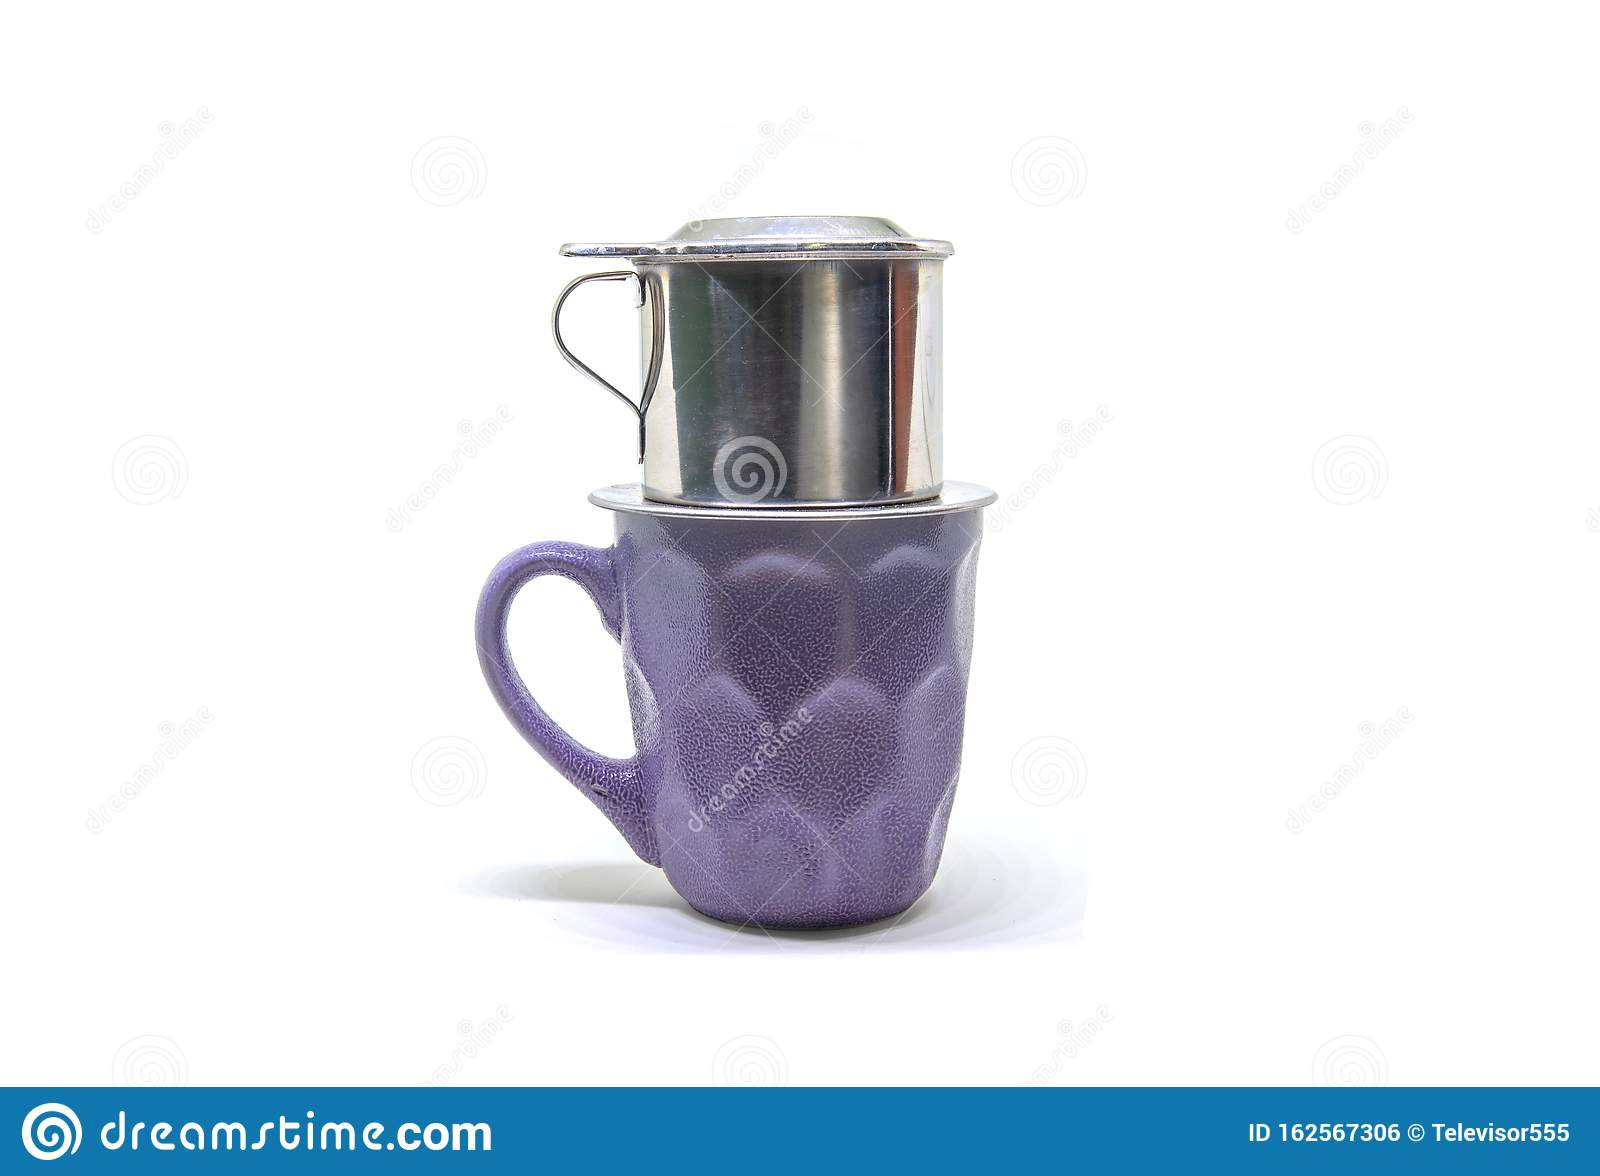 Vietnamese Coffee Filter On Ceramic Cup Coffee Filter On White Background Vietnam Style Coffee Brewing Stock Photo Image Of Asian Ceramic 162567306